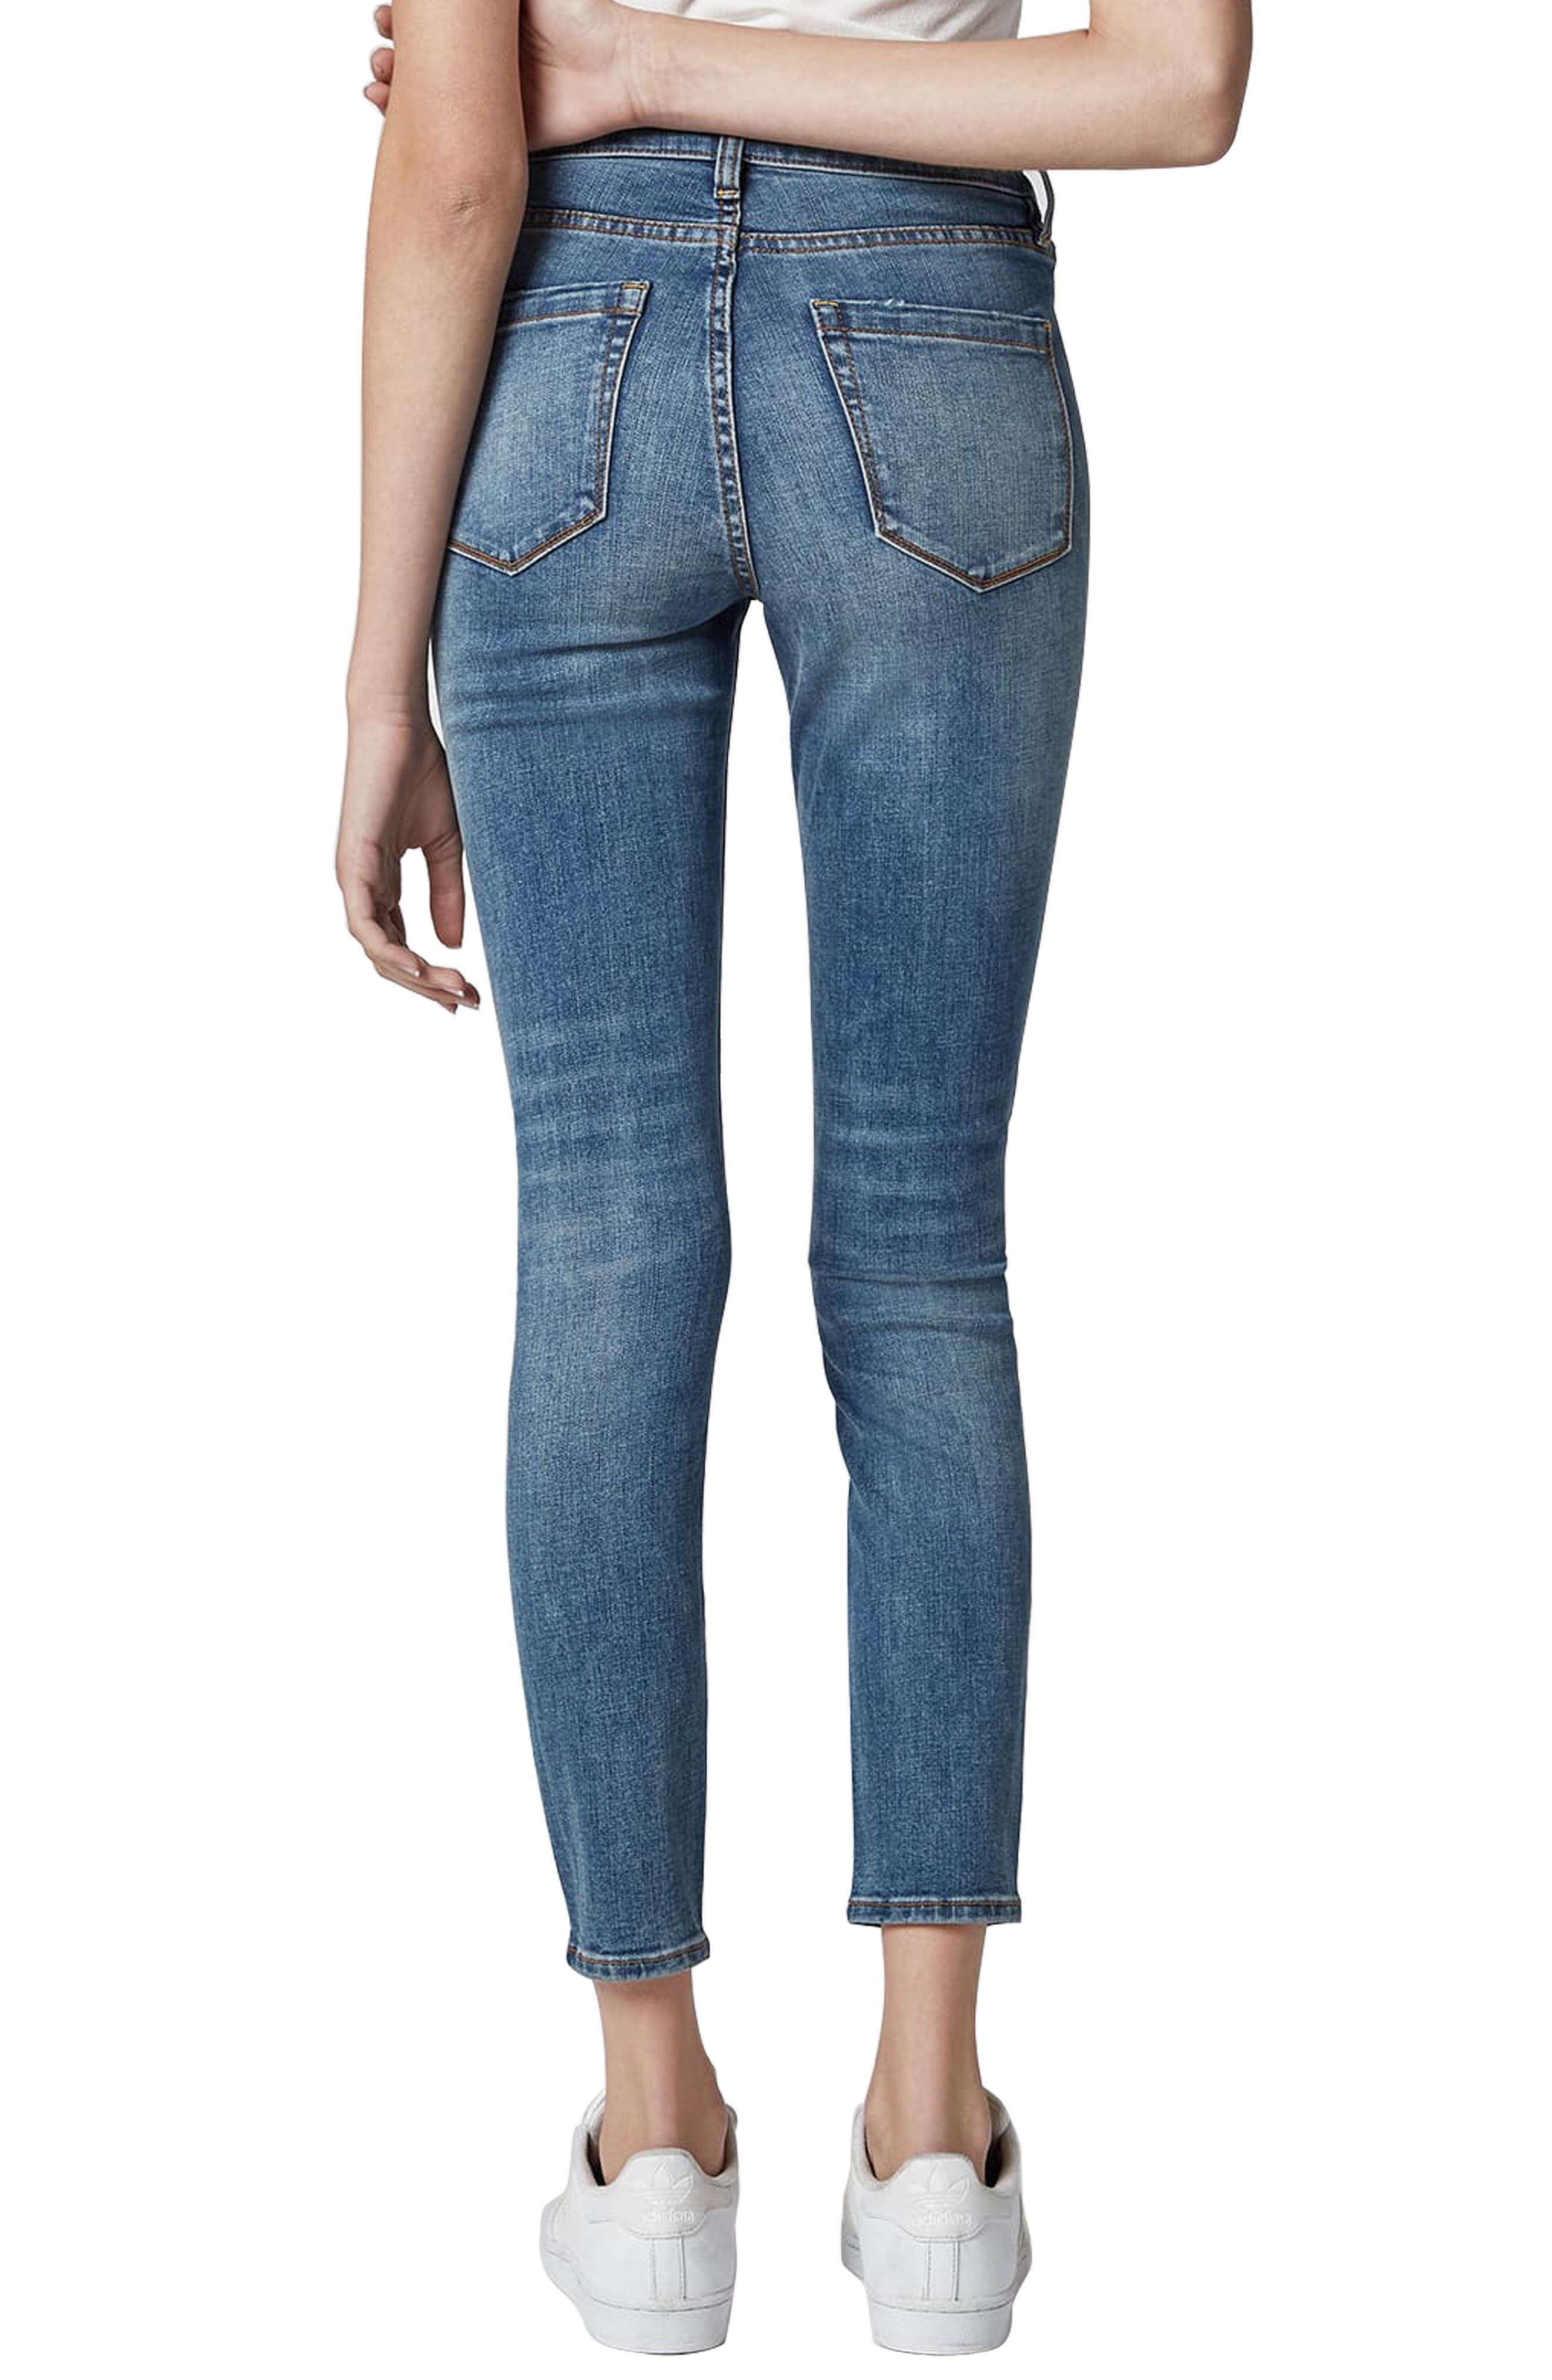 BLANKNYC, The Bond Ripped Skinny Jeans, Alternate thumbnail 2, color, JERSEY GIRLS